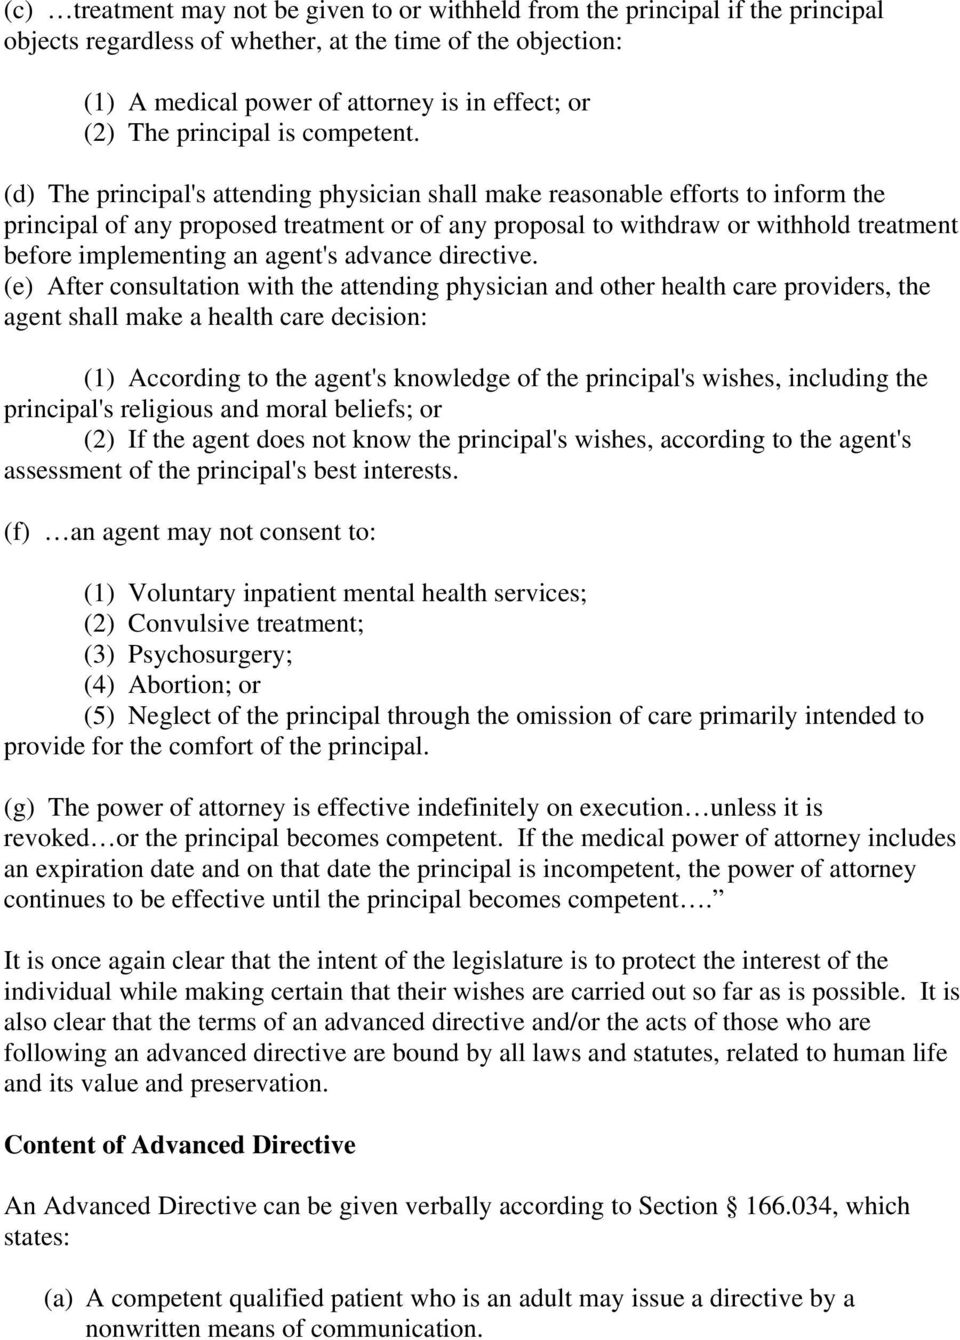 (d) The principal's attending physician shall make reasonable efforts to inform the principal of any proposed treatment or of any proposal to withdraw or withhold treatment before implementing an